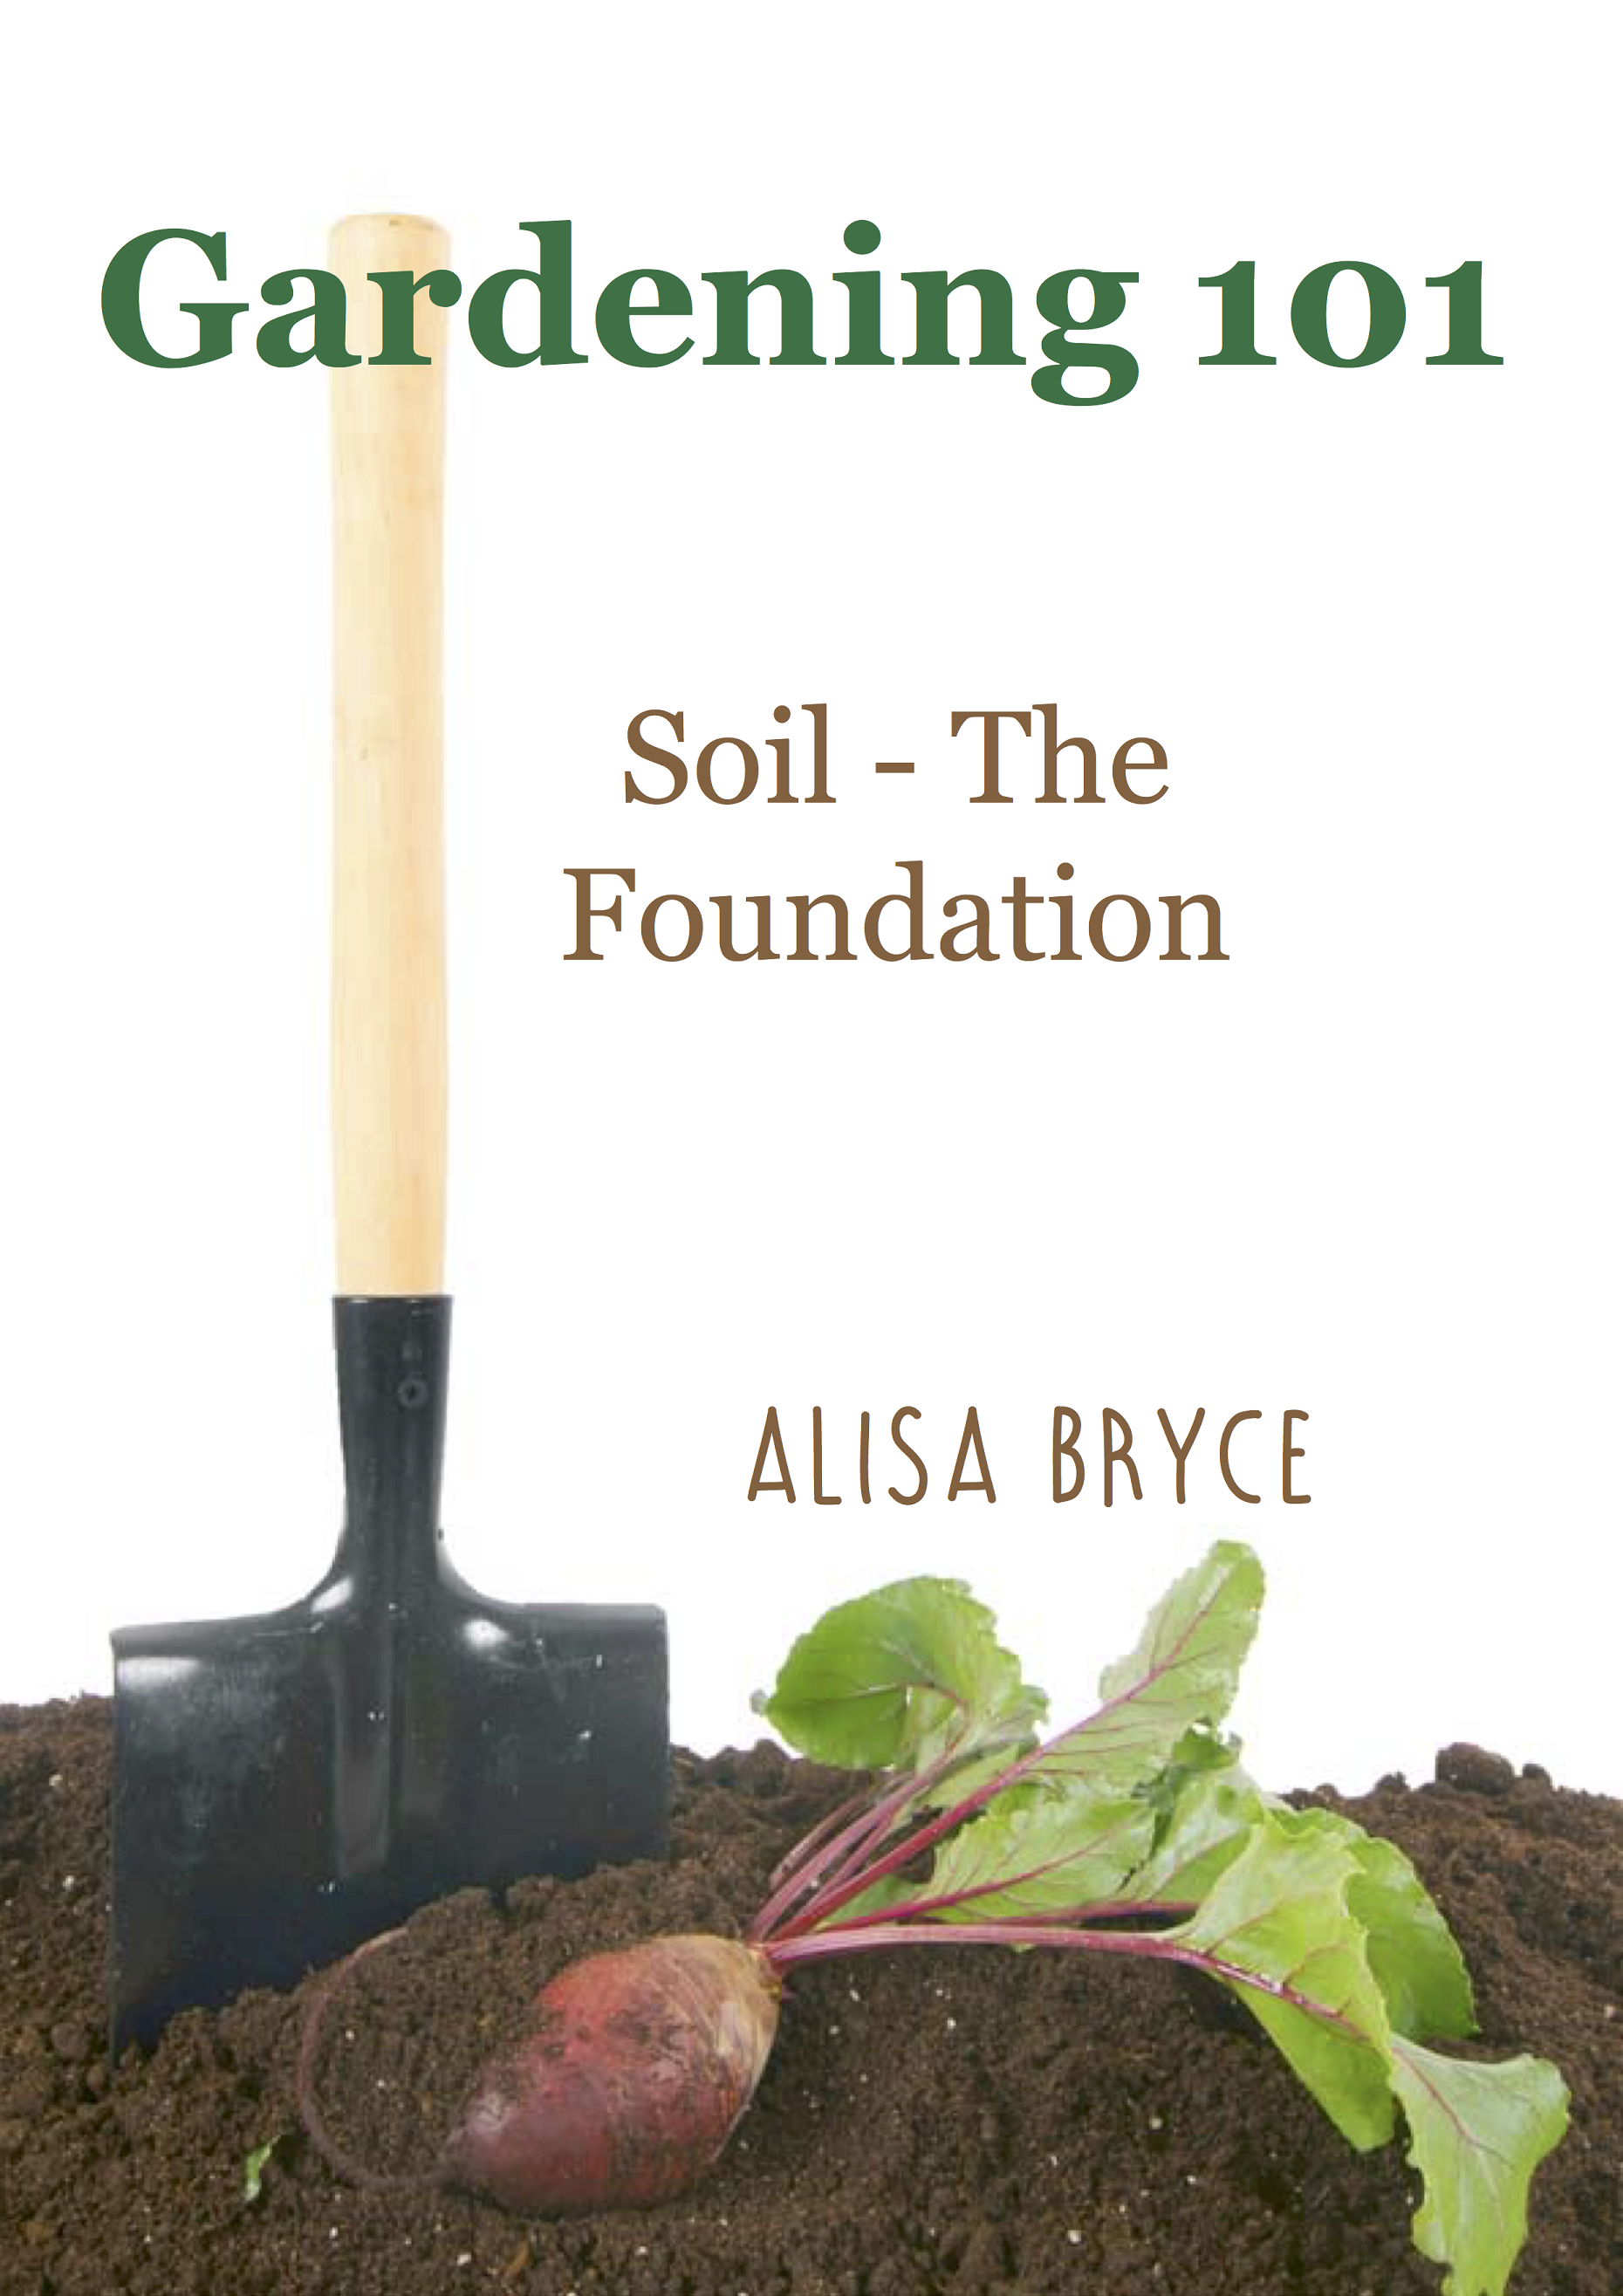 Gardening 101 soil the foundation alisa bryce for Gardening 101 australia